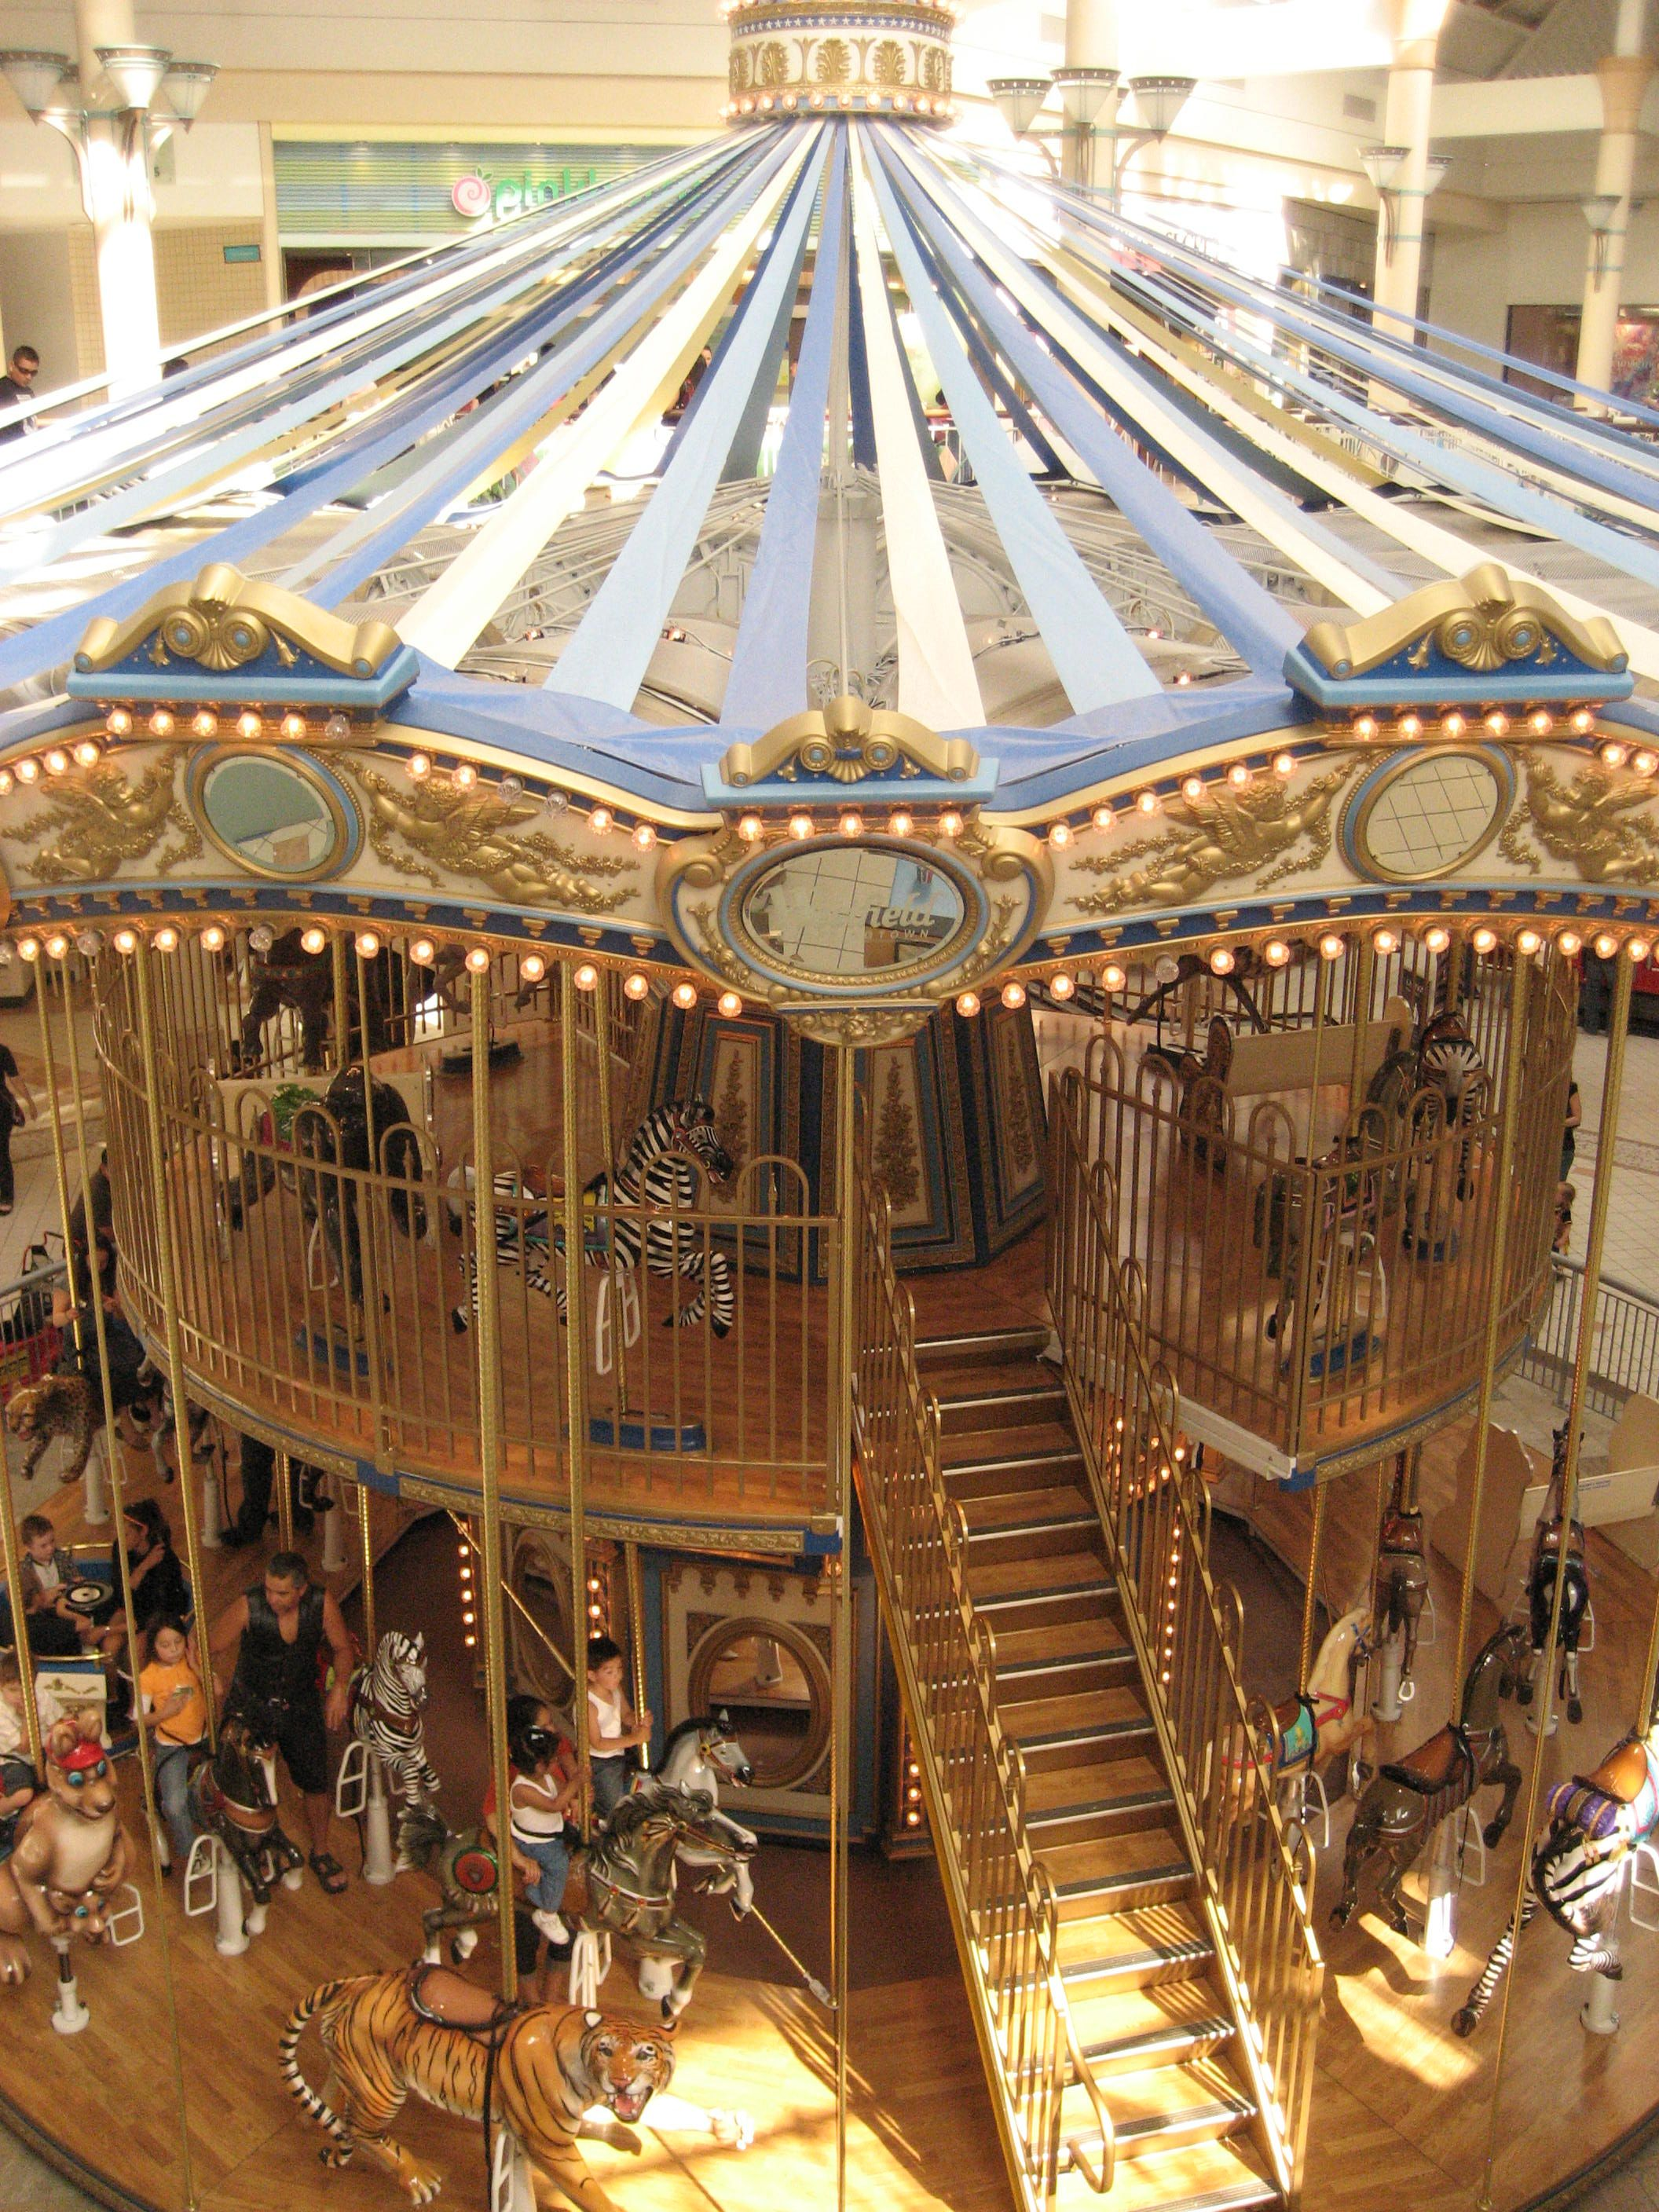 Carousel Two Story Looks Like It Is In A Mall